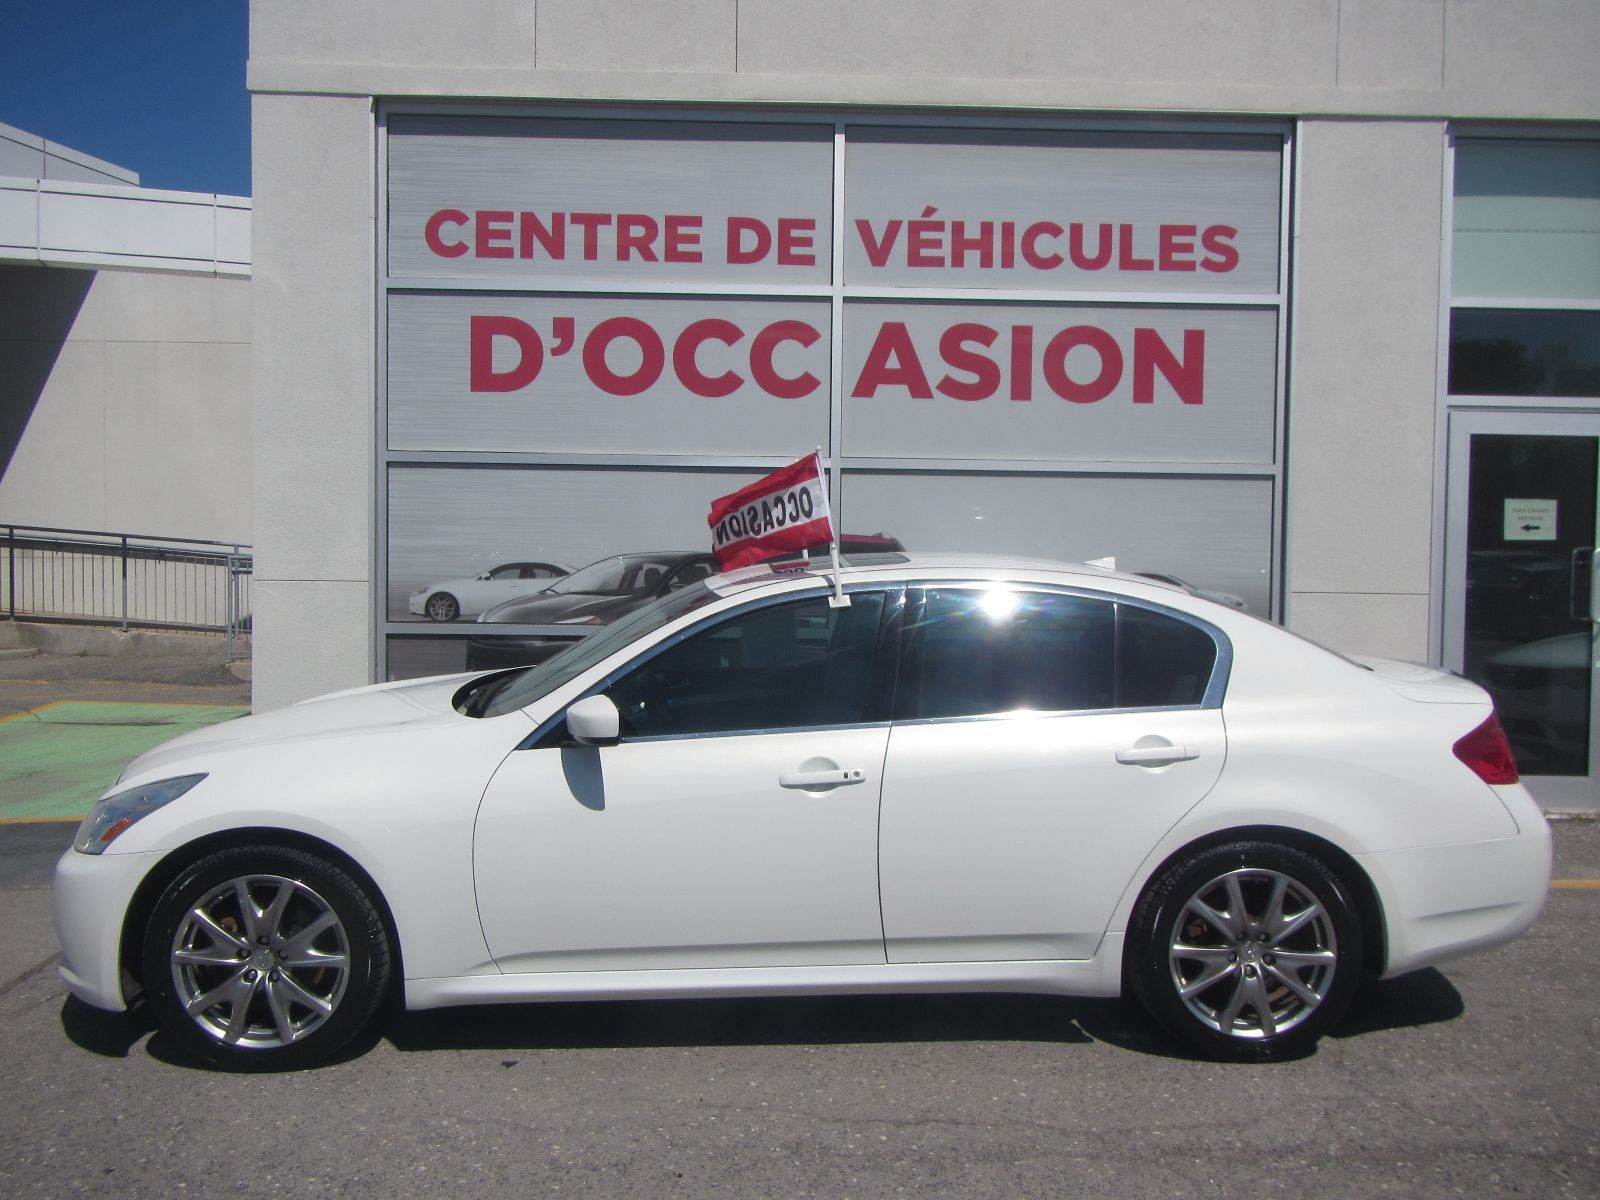 Used 2009 Infiniti G37 Sedan Xs In Montreal Laval And South Shore Remote Start S0705